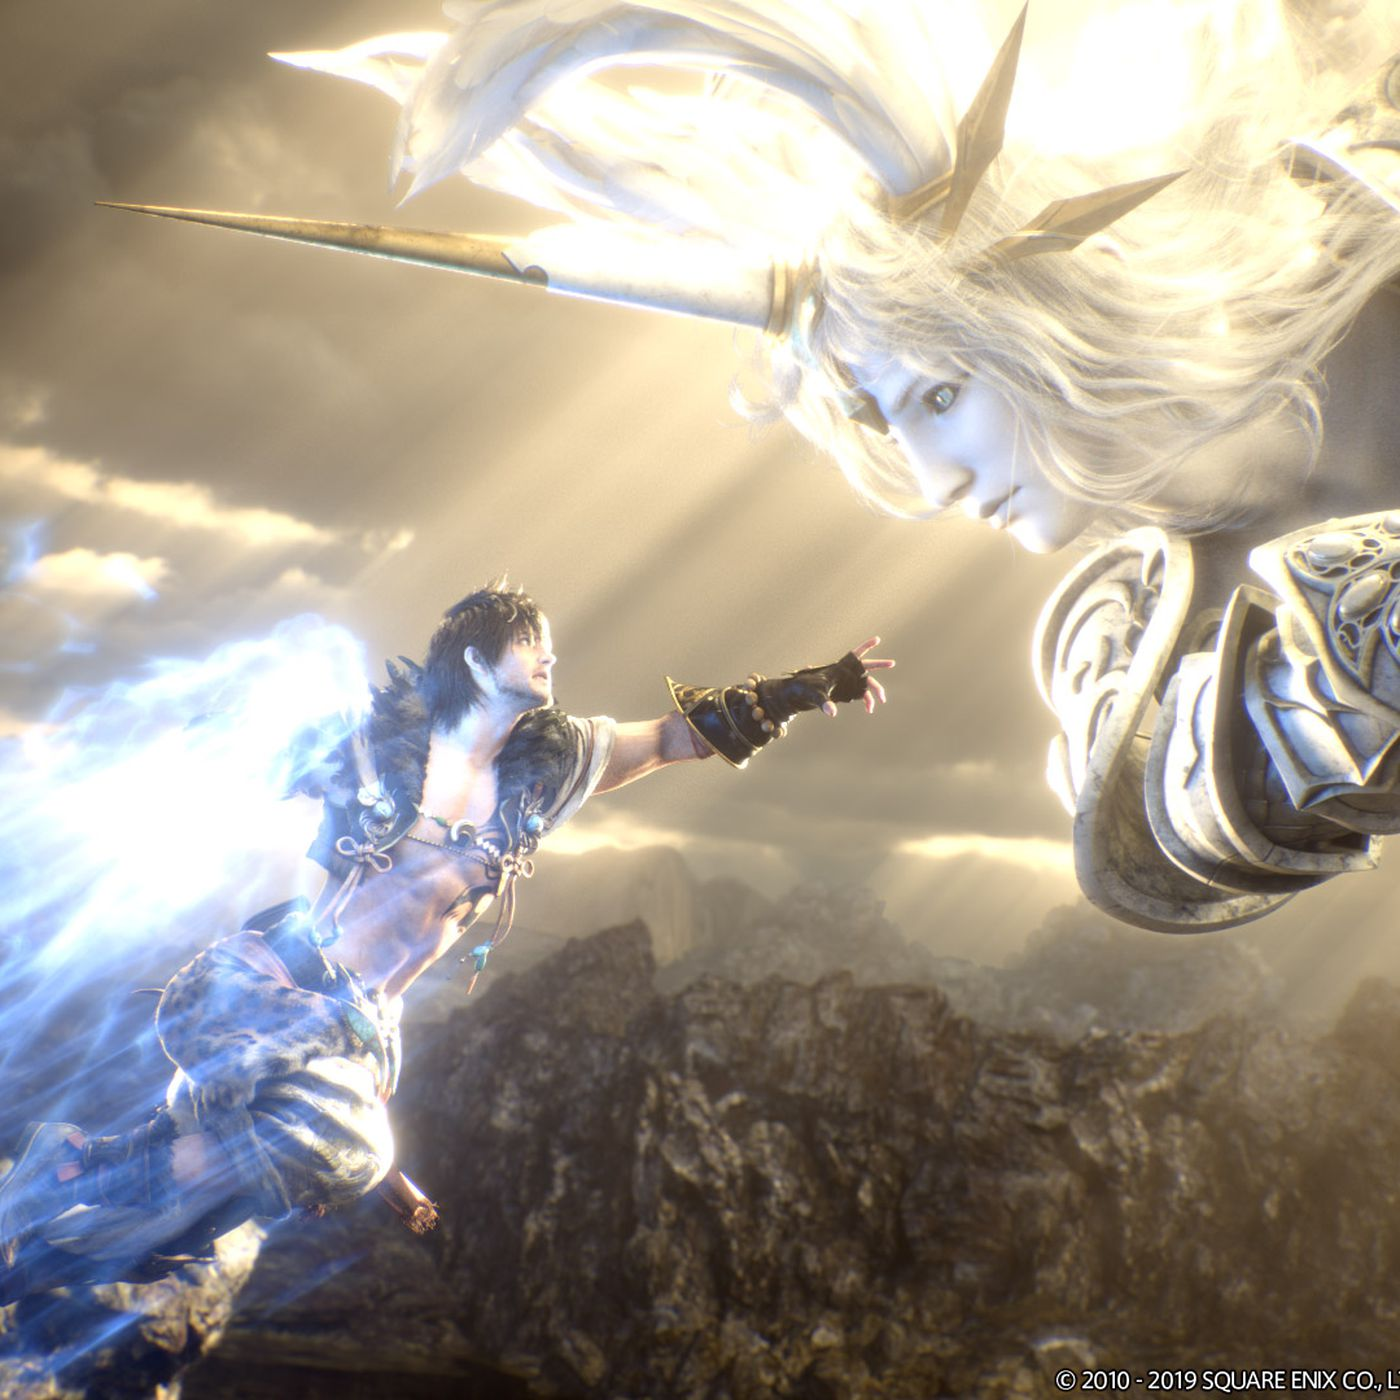 5 things to know from the latest Final Fantasy 14